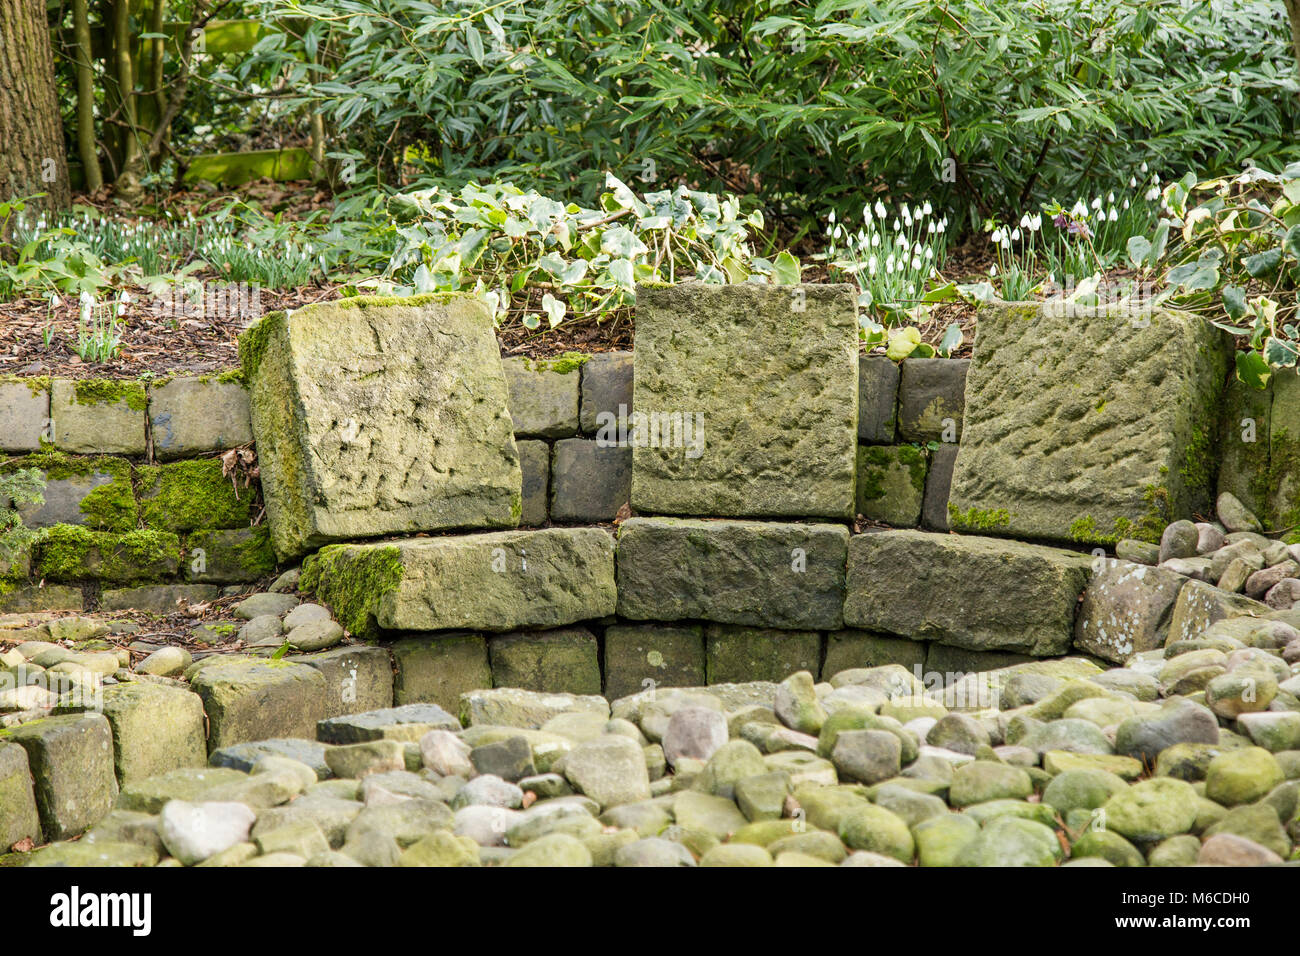 Wondrous Stone Garden Seating At York Gate Garden Leeds Stock Photo Cjindustries Chair Design For Home Cjindustriesco